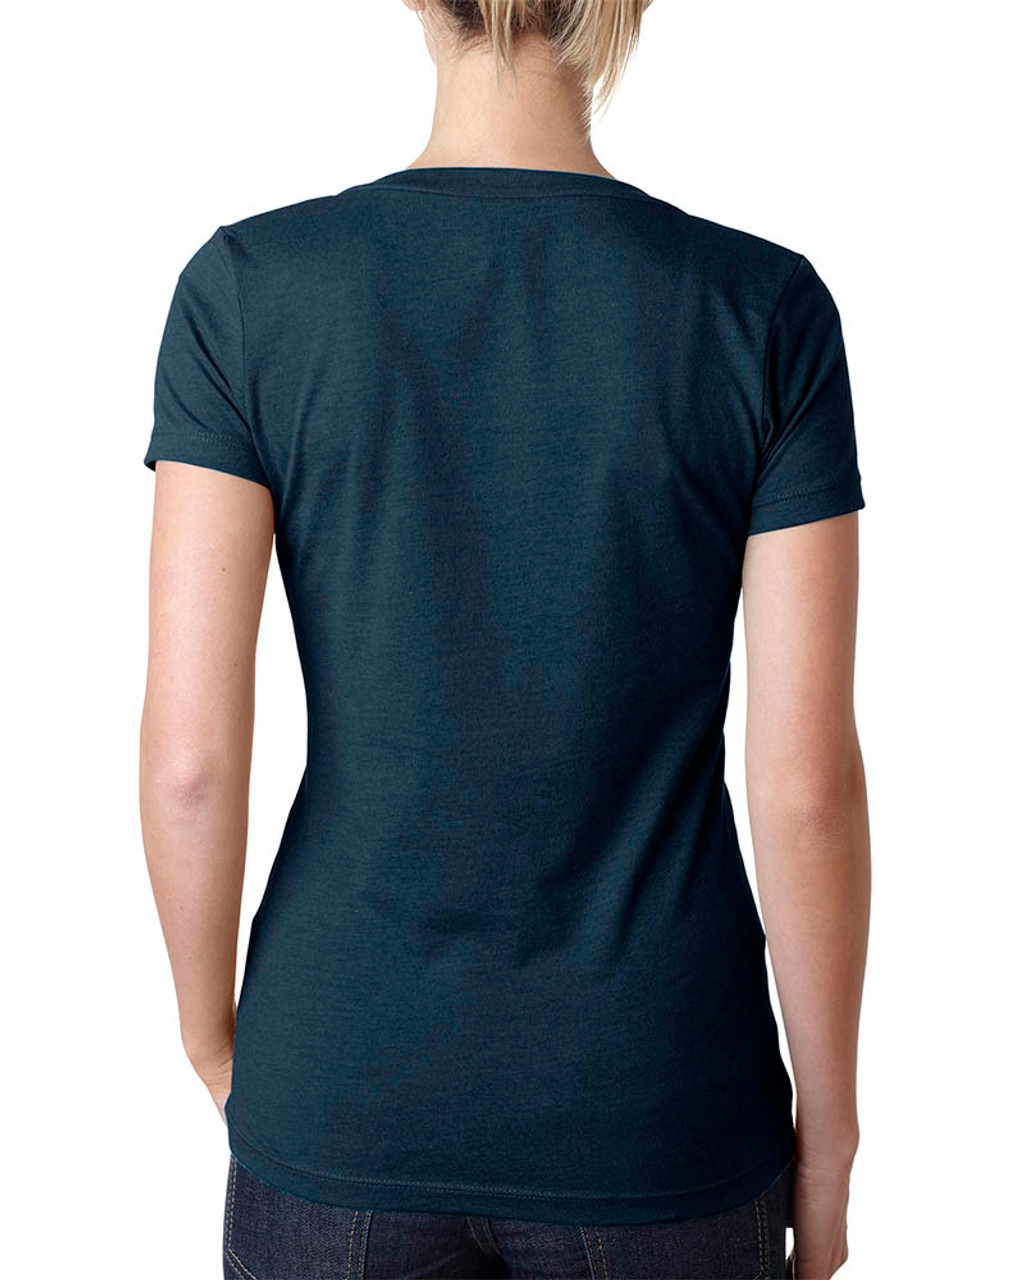 Midnight Navy - 6640 Next Level Ladies' CVC Deep V-Neck T-shirt  | BlankClothing.ca